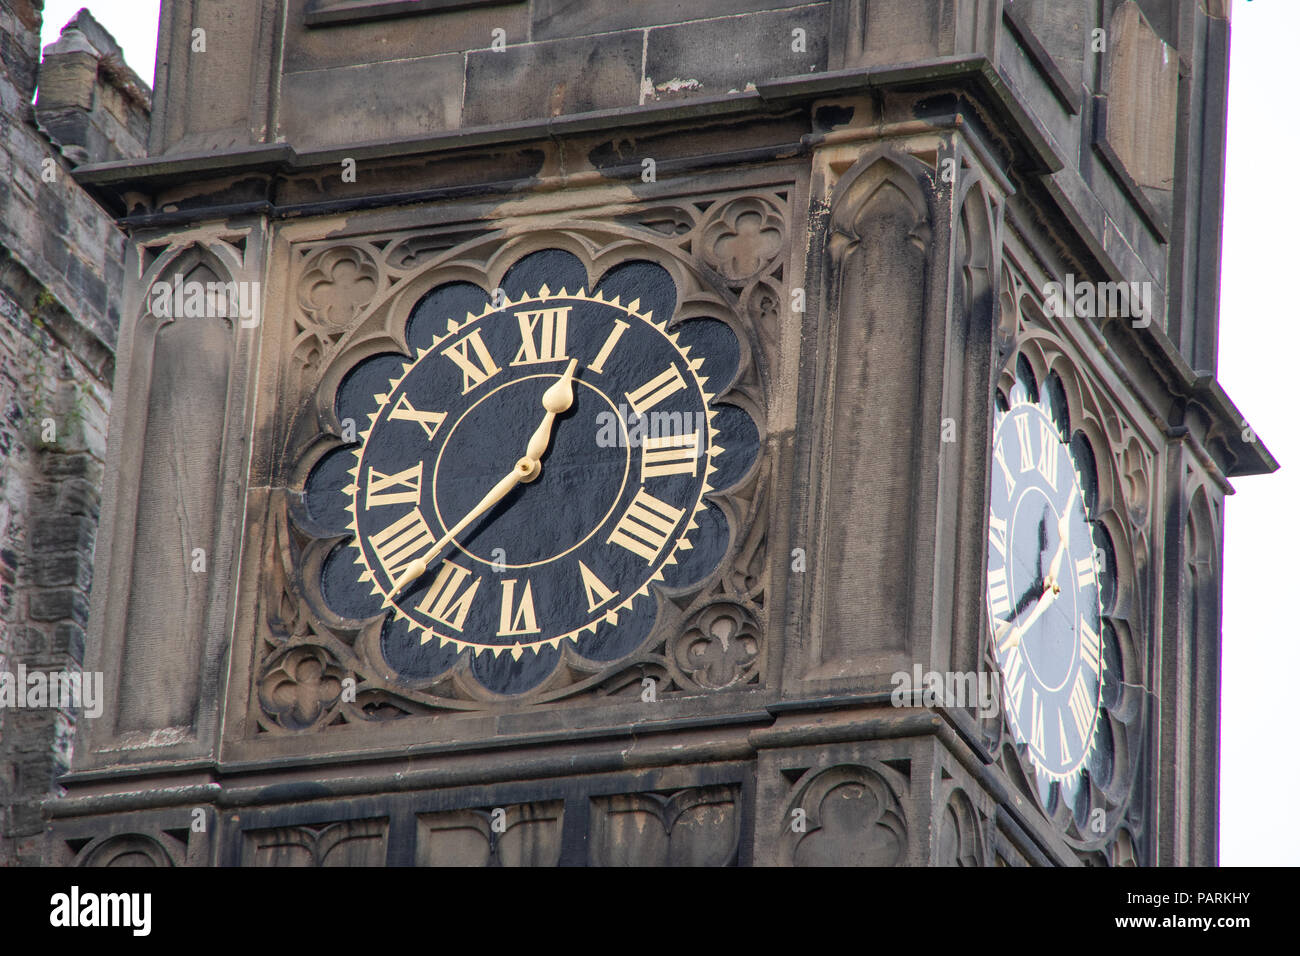 Clock tower detail images of the outside of the historic building of Lancaster Castle in the city of Lancaster, UK Stock Photo